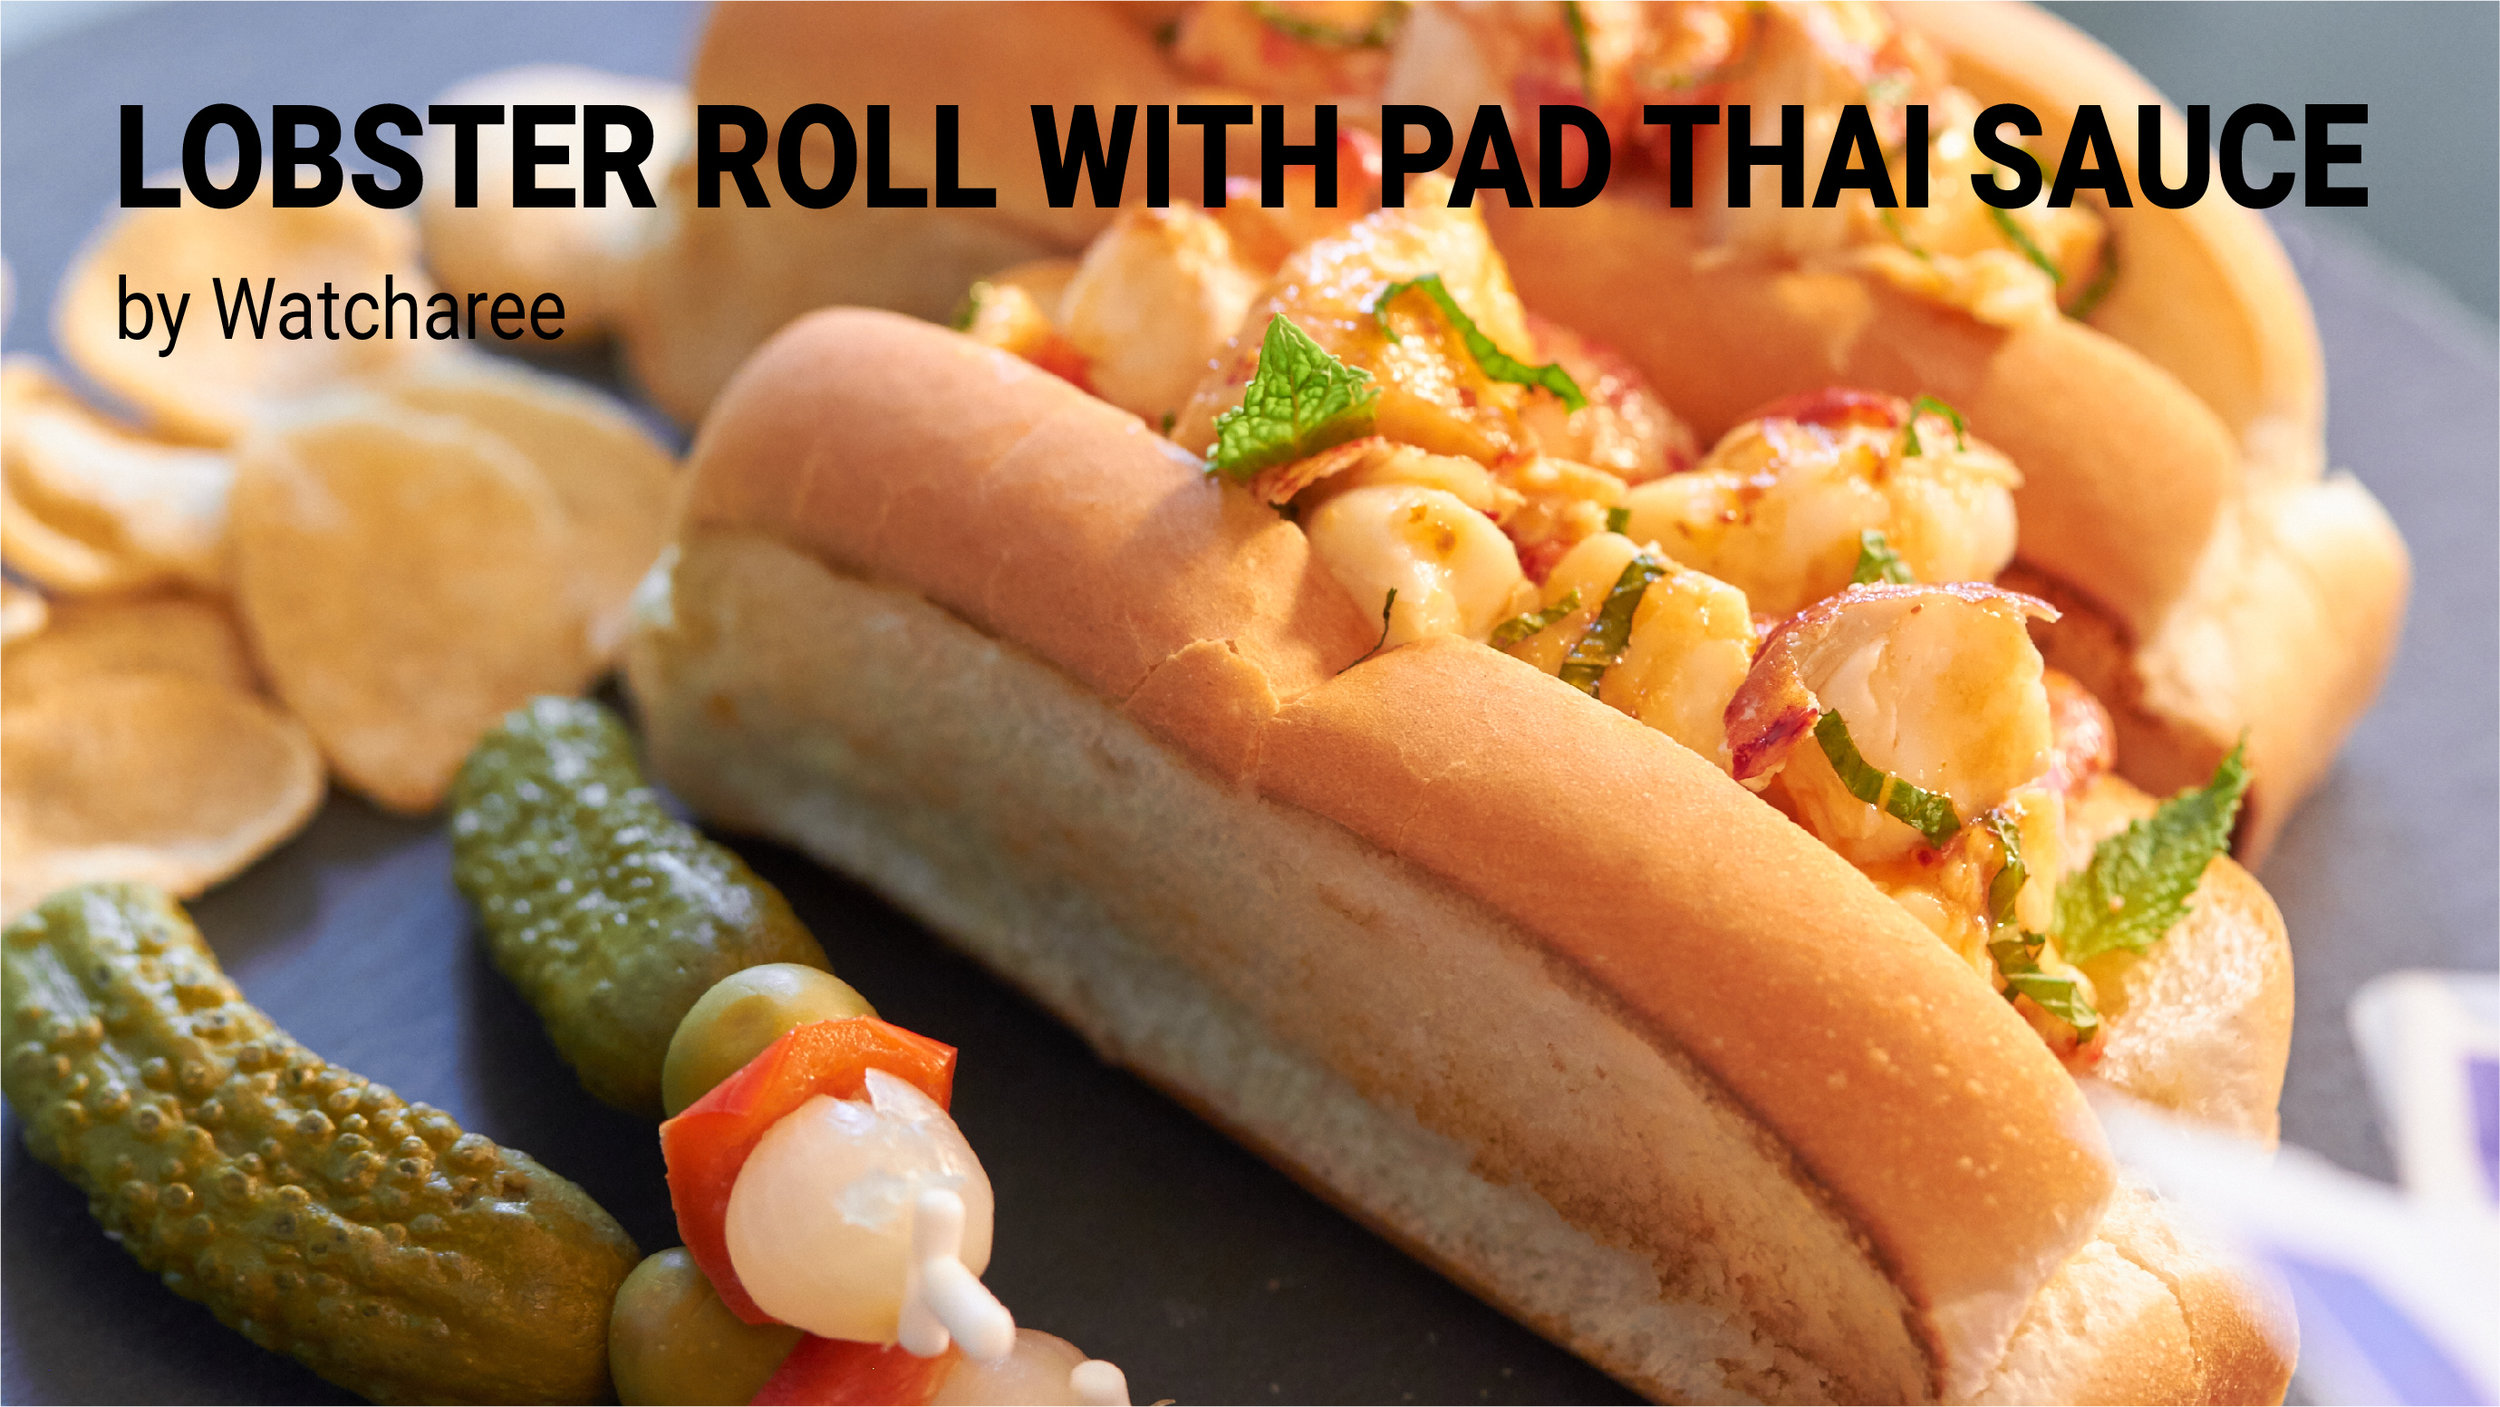 Lobster Roll with Pad Thai Sauce_3-01.jpg